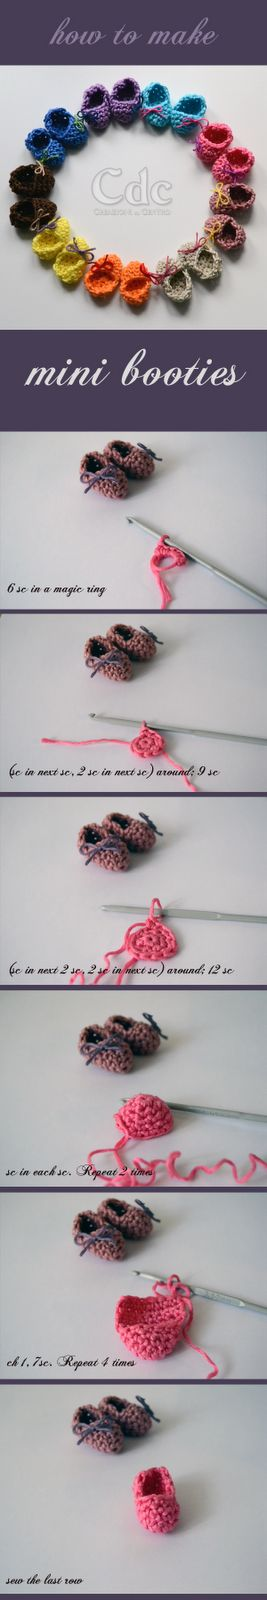 How to make mini booties : crochet pattern | Creazioni del Centro